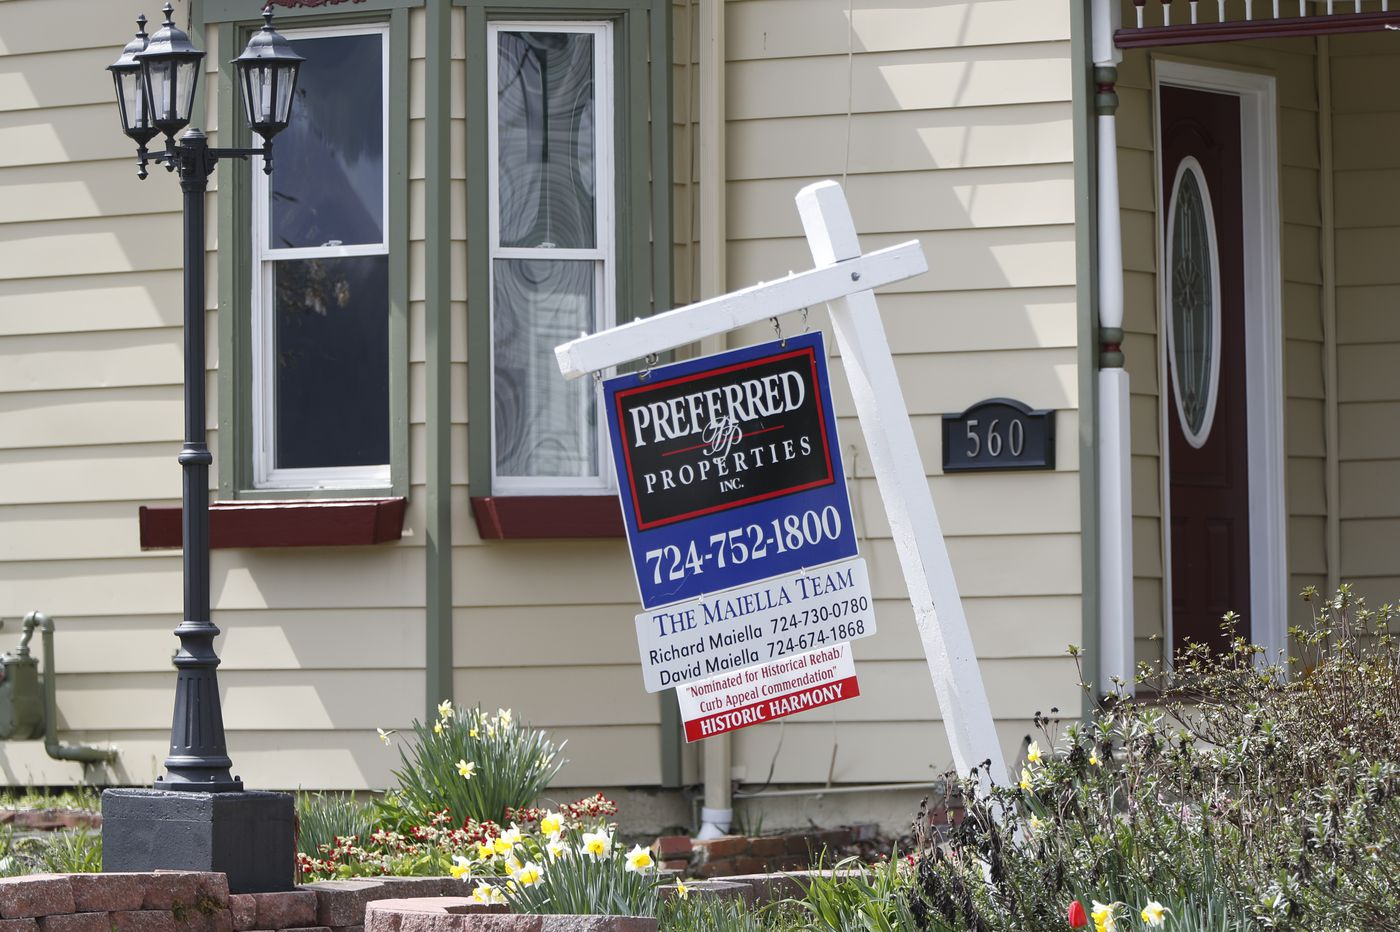 New home sales in the U.S. jumped 13.8% in June